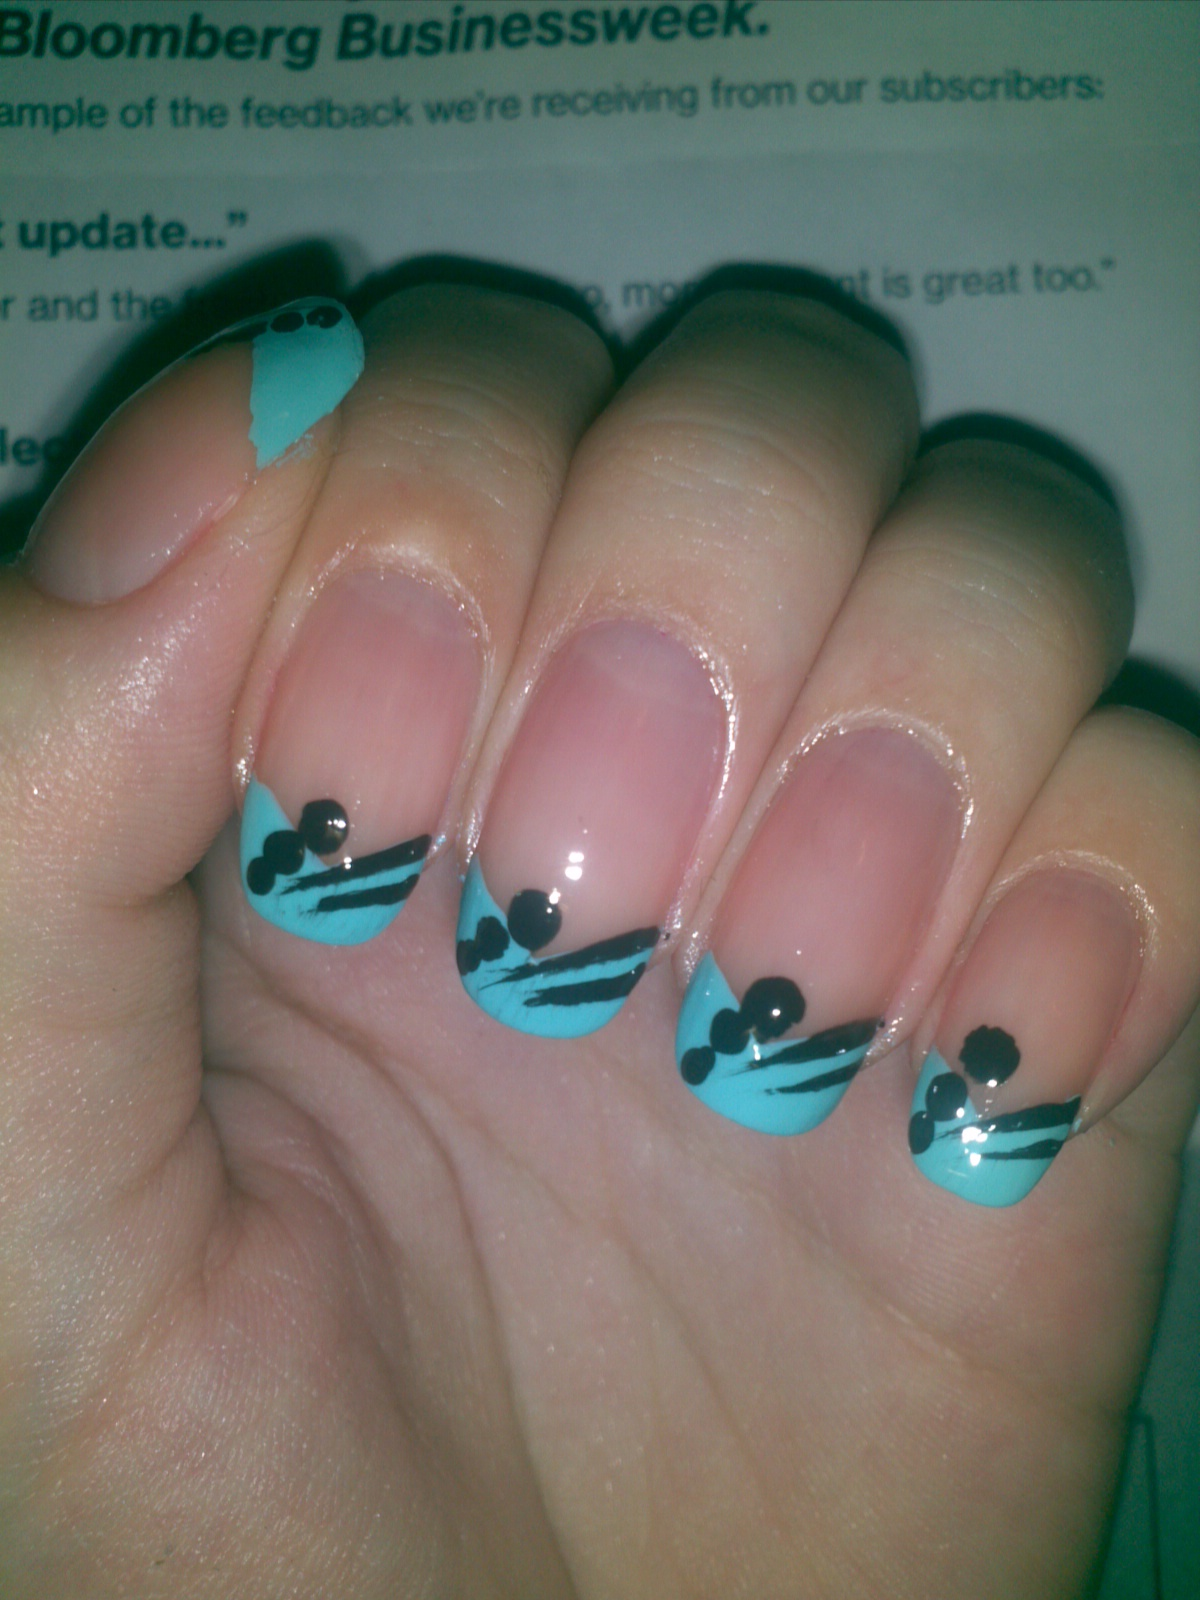 Juicy Nails: Nail Art: French Tip in Gorgeous Blue with Abstract Lines